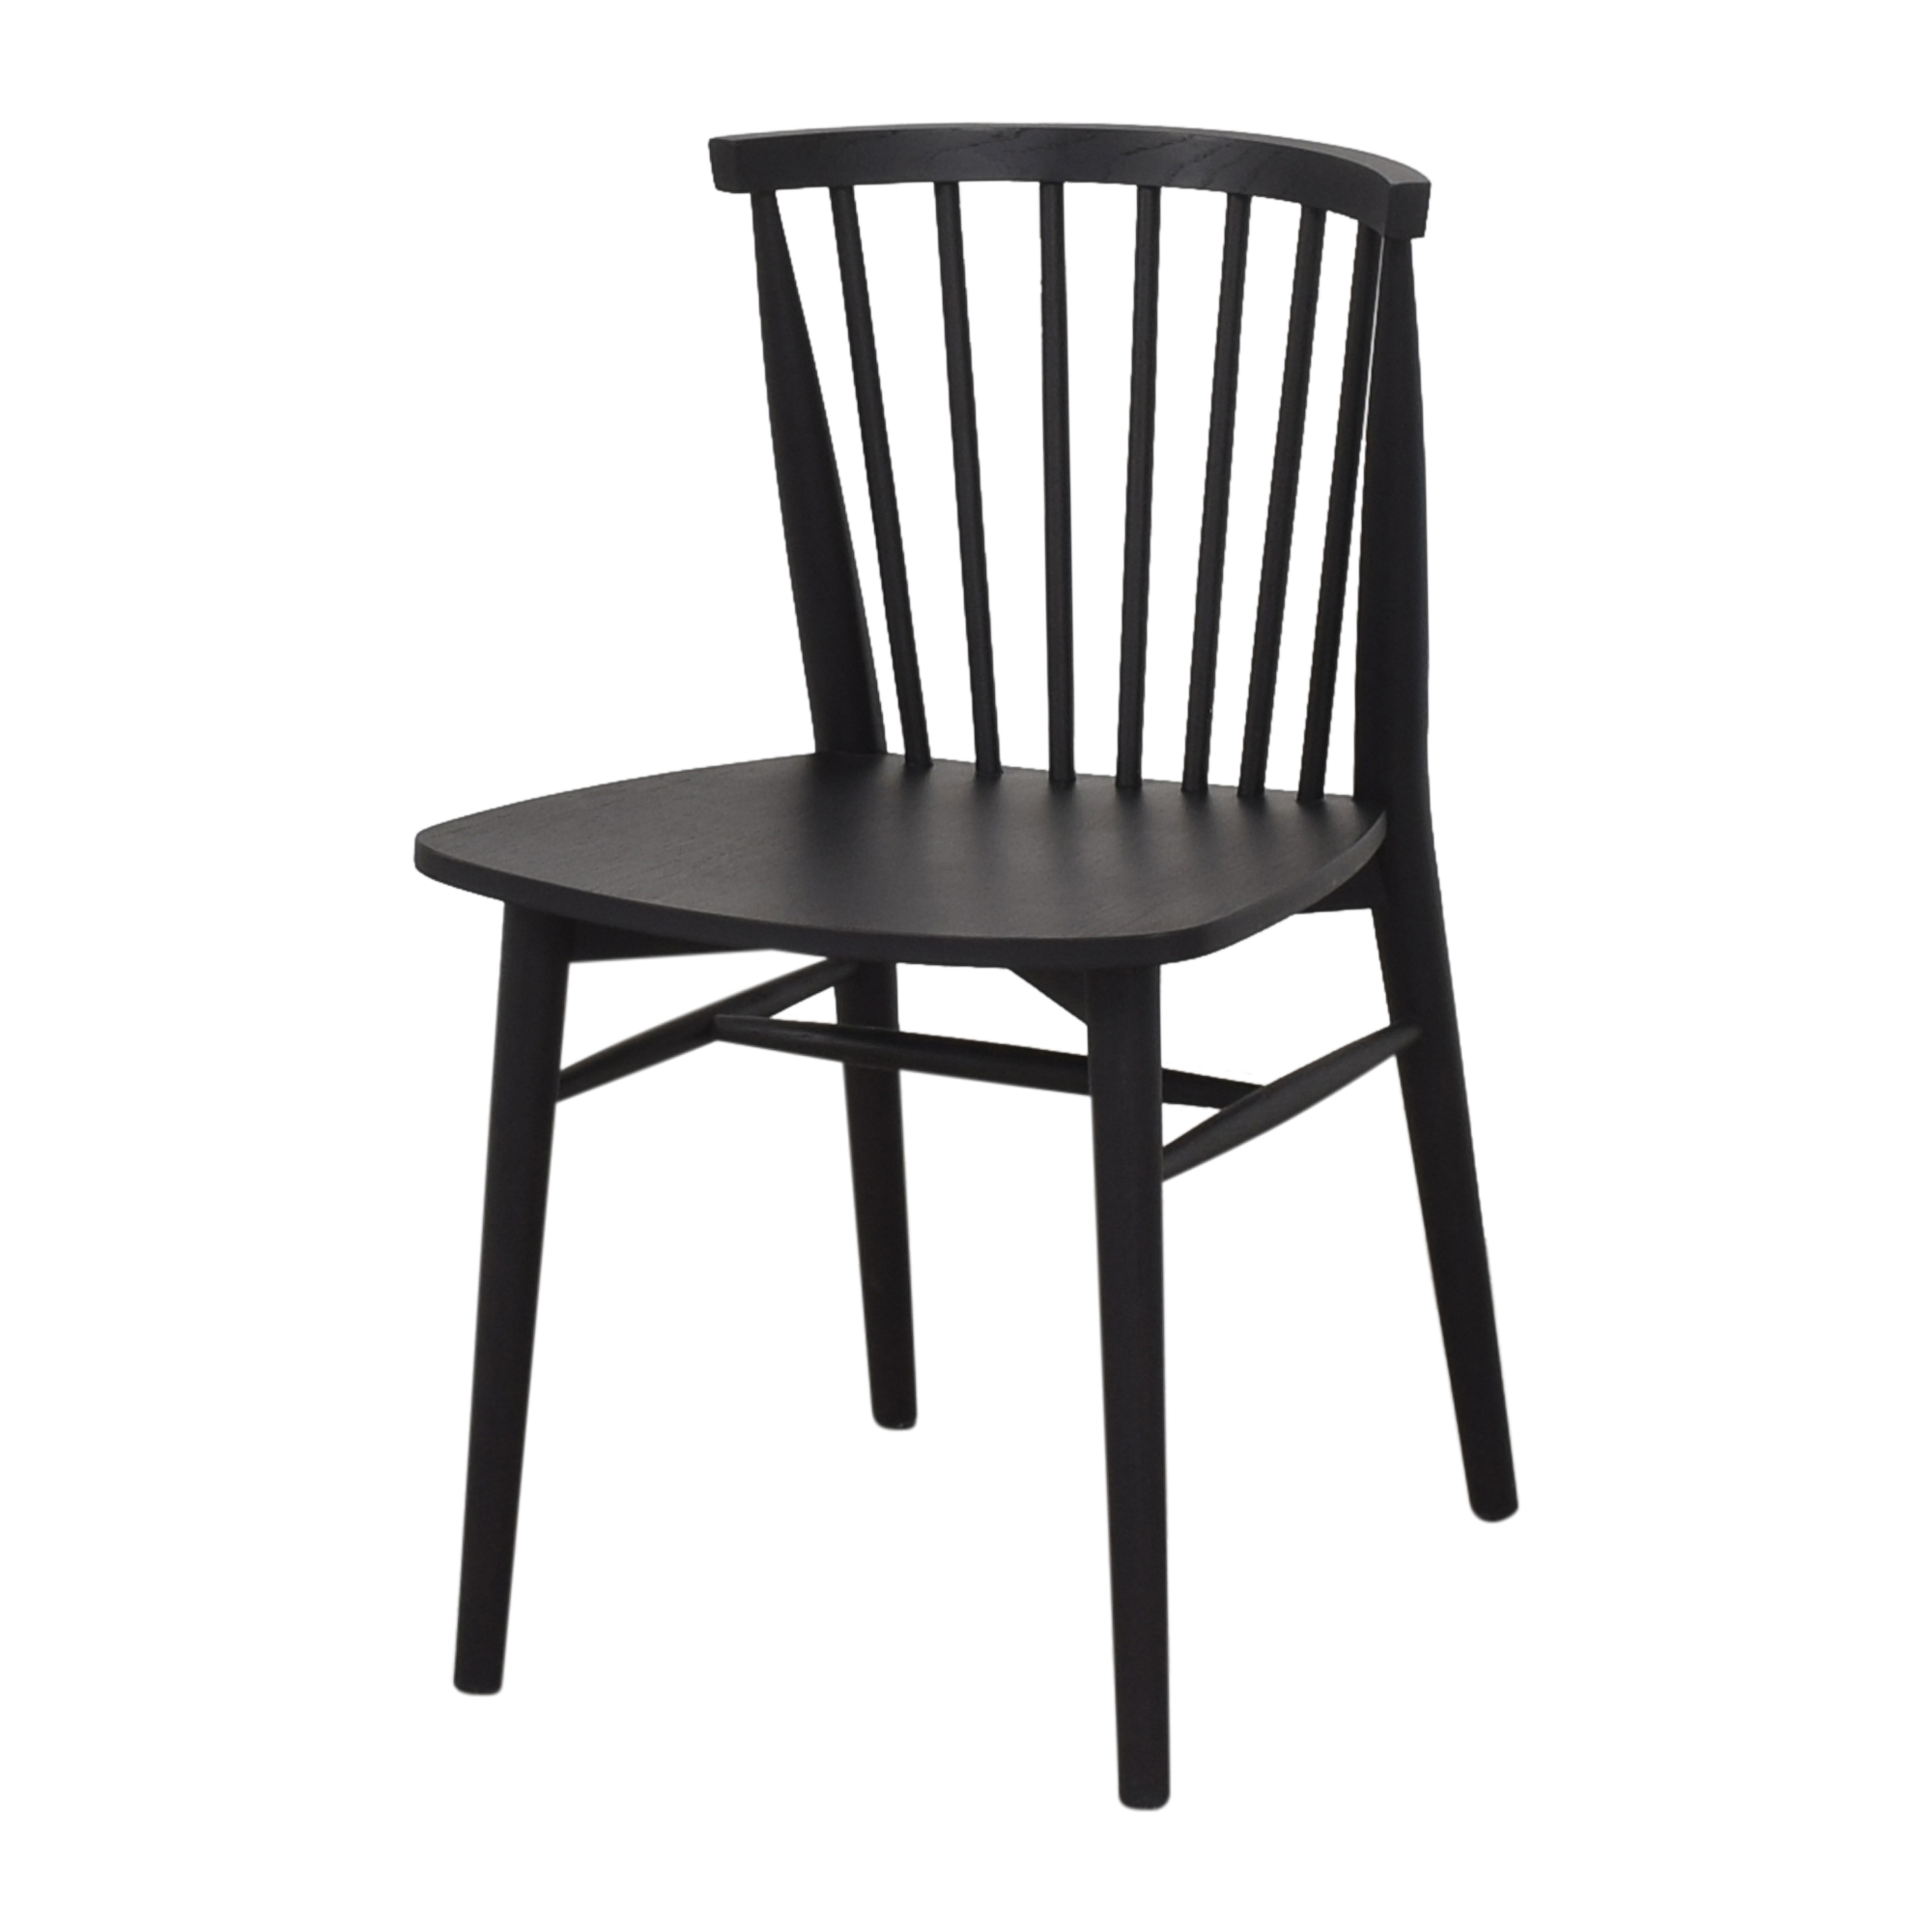 Article Article Rus Dining Chairs nyc